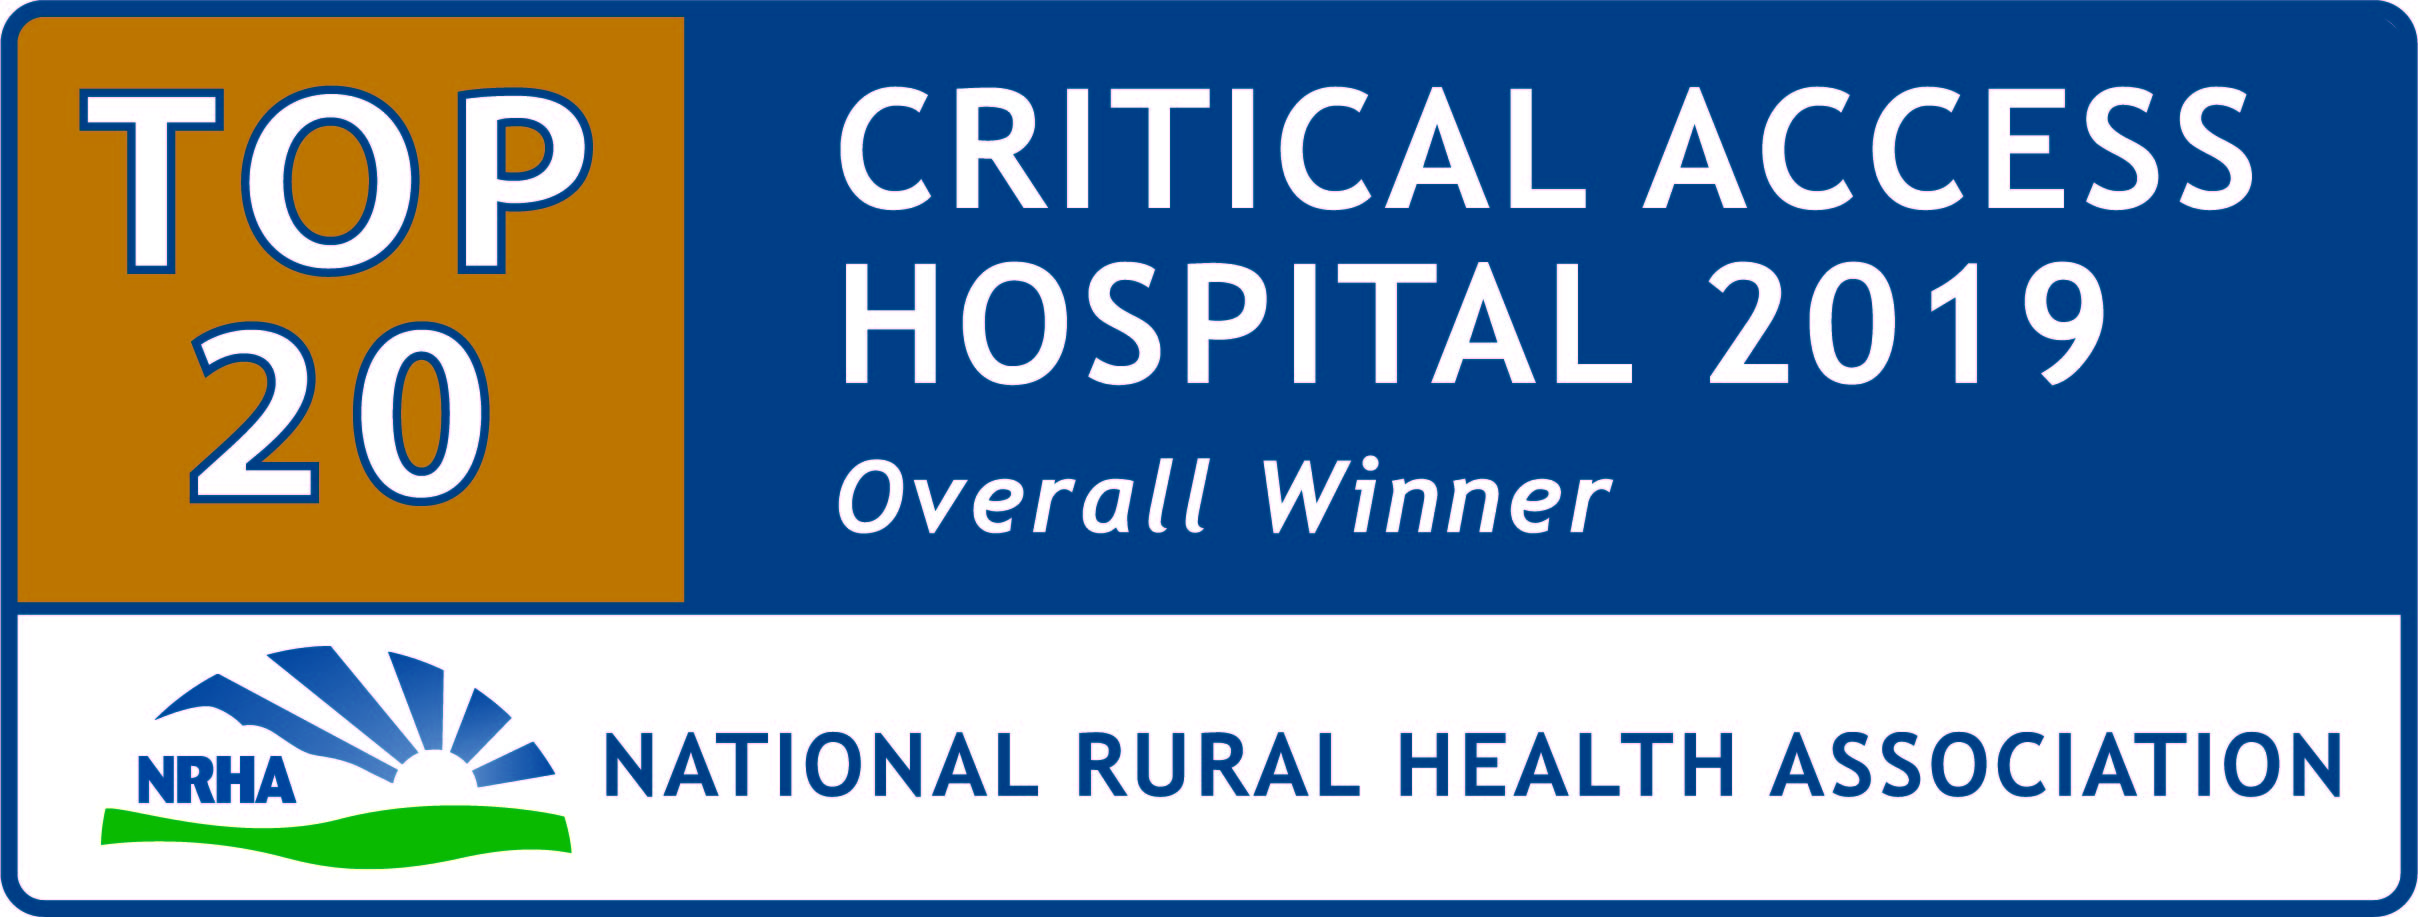 Critical Access Top 20 Hospital 2019 logo